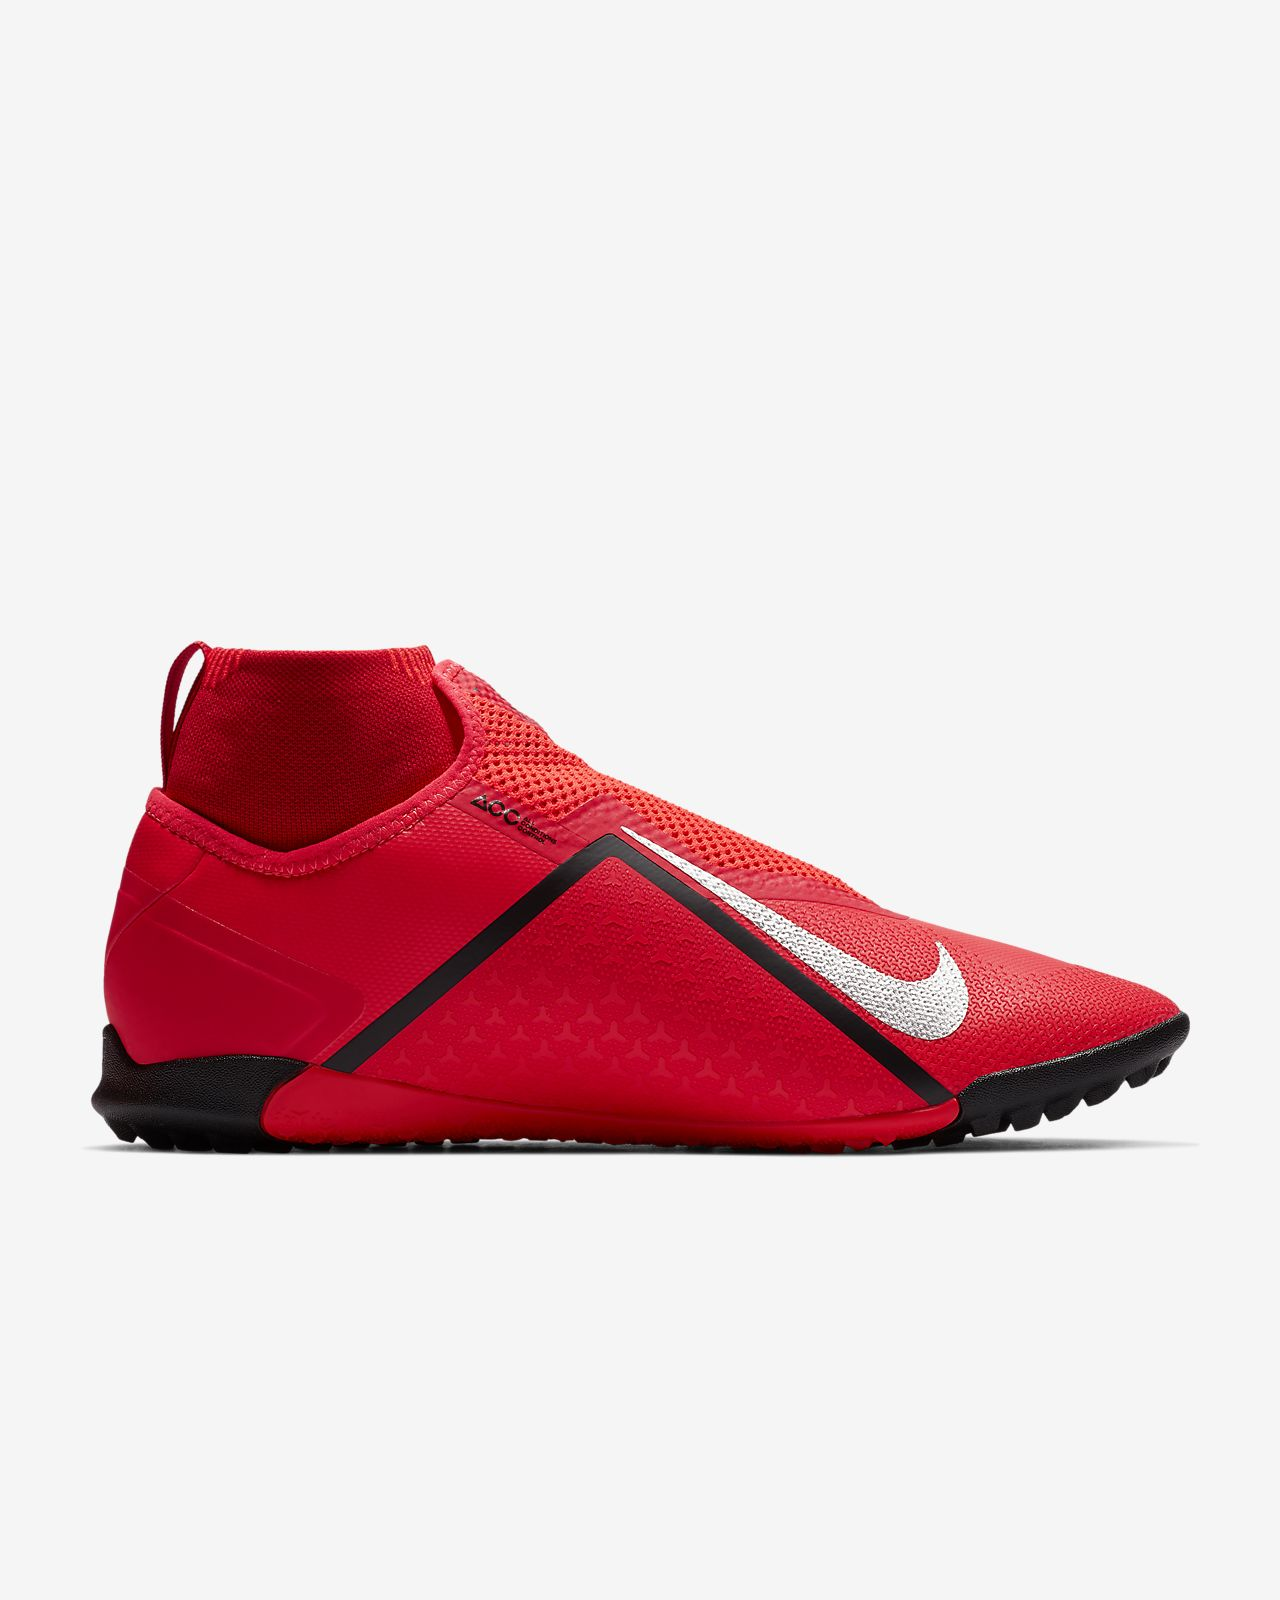 36eaed32c ... Nike React PhantomVSN Pro Dynamic Fit Game Over TF Turf Football Shoe